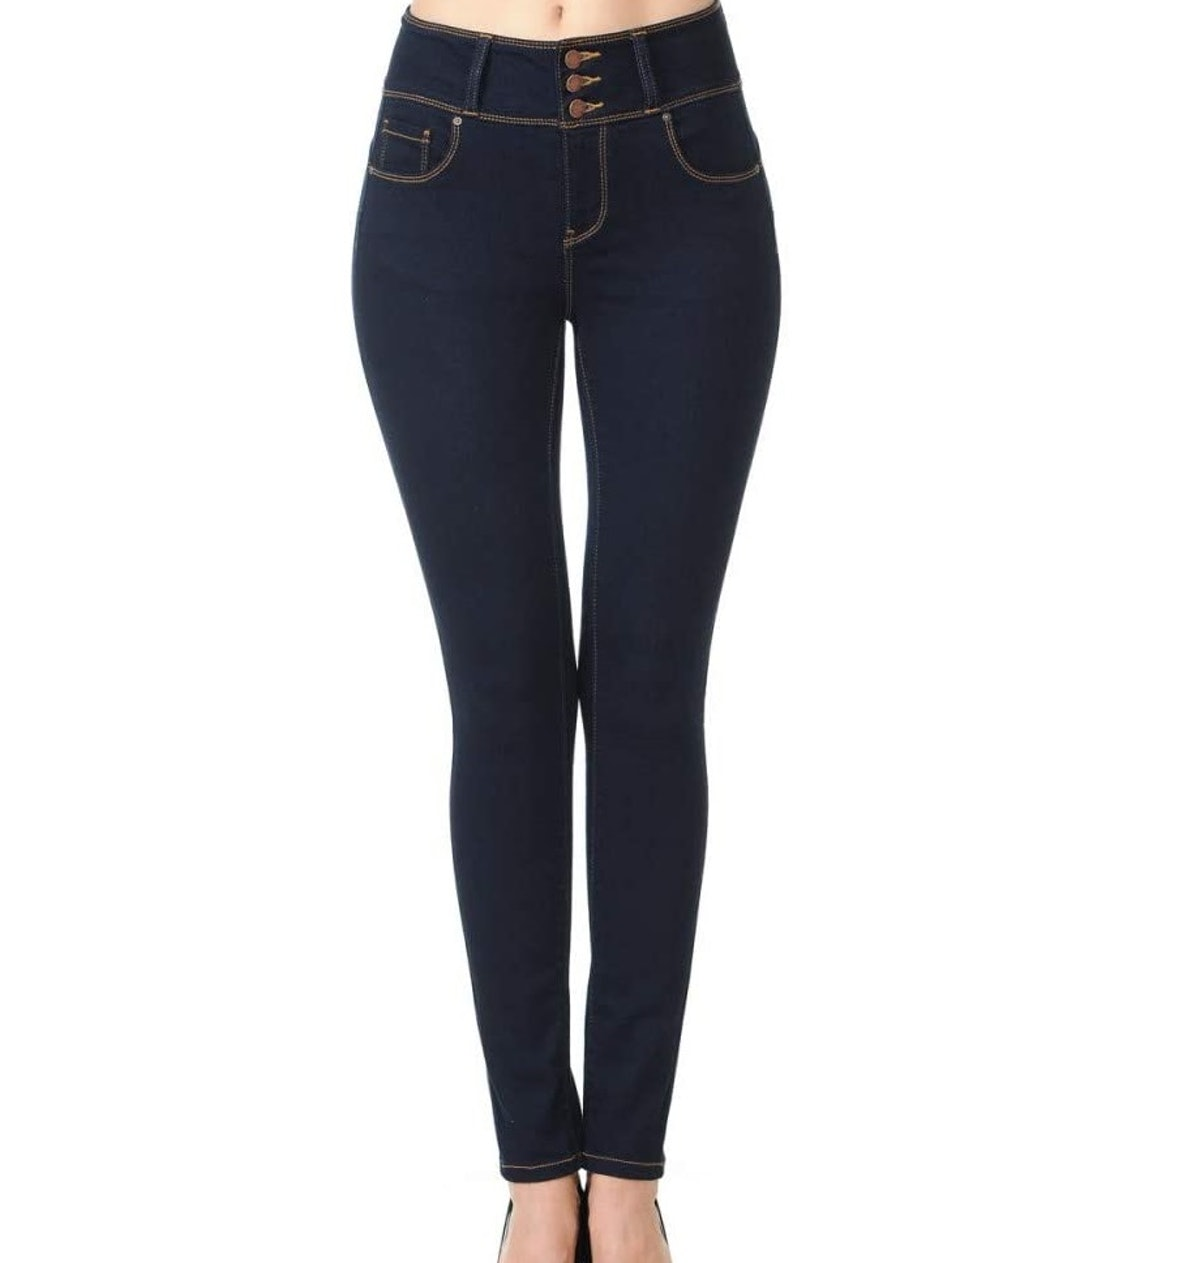 Wax 'Butt I Love You' High-Rise Button Jeans